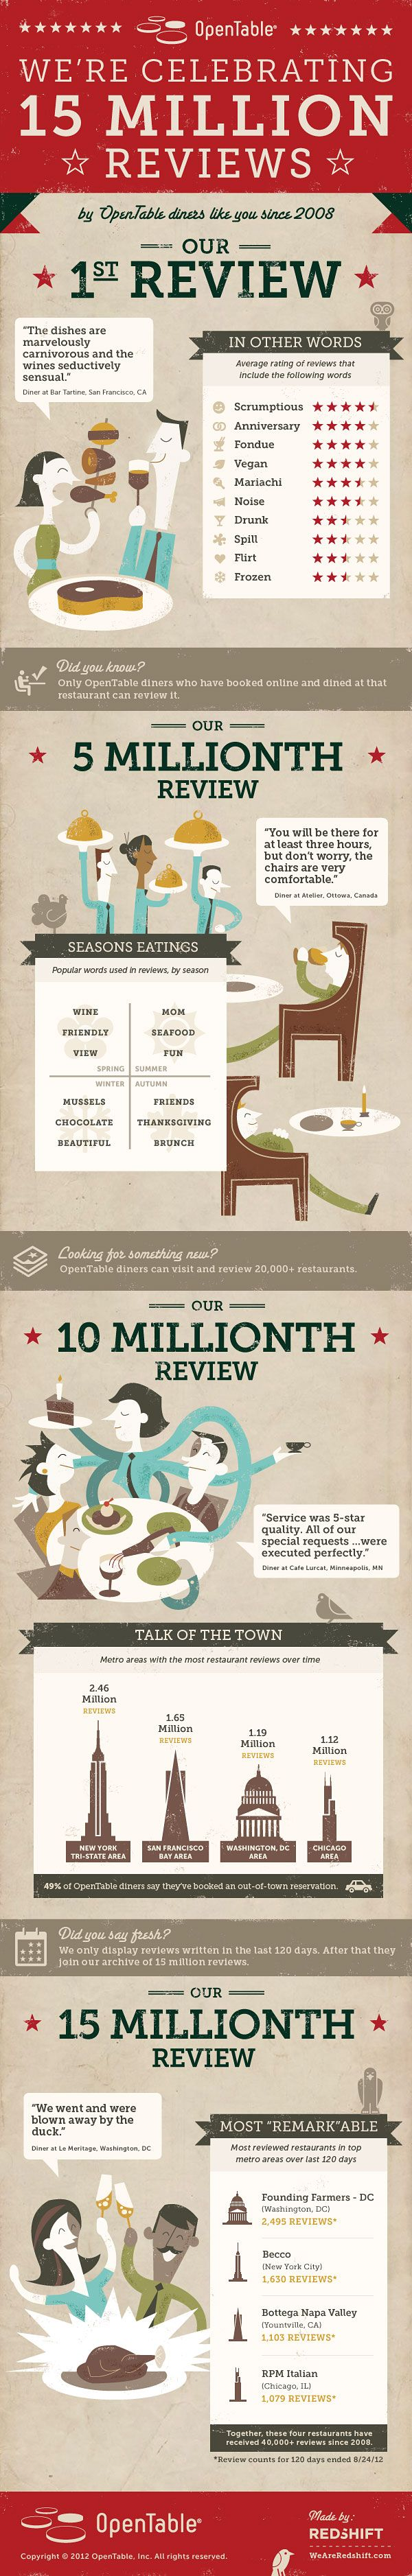 70 best Social - Customer Reviews images on Pinterest   Content ...